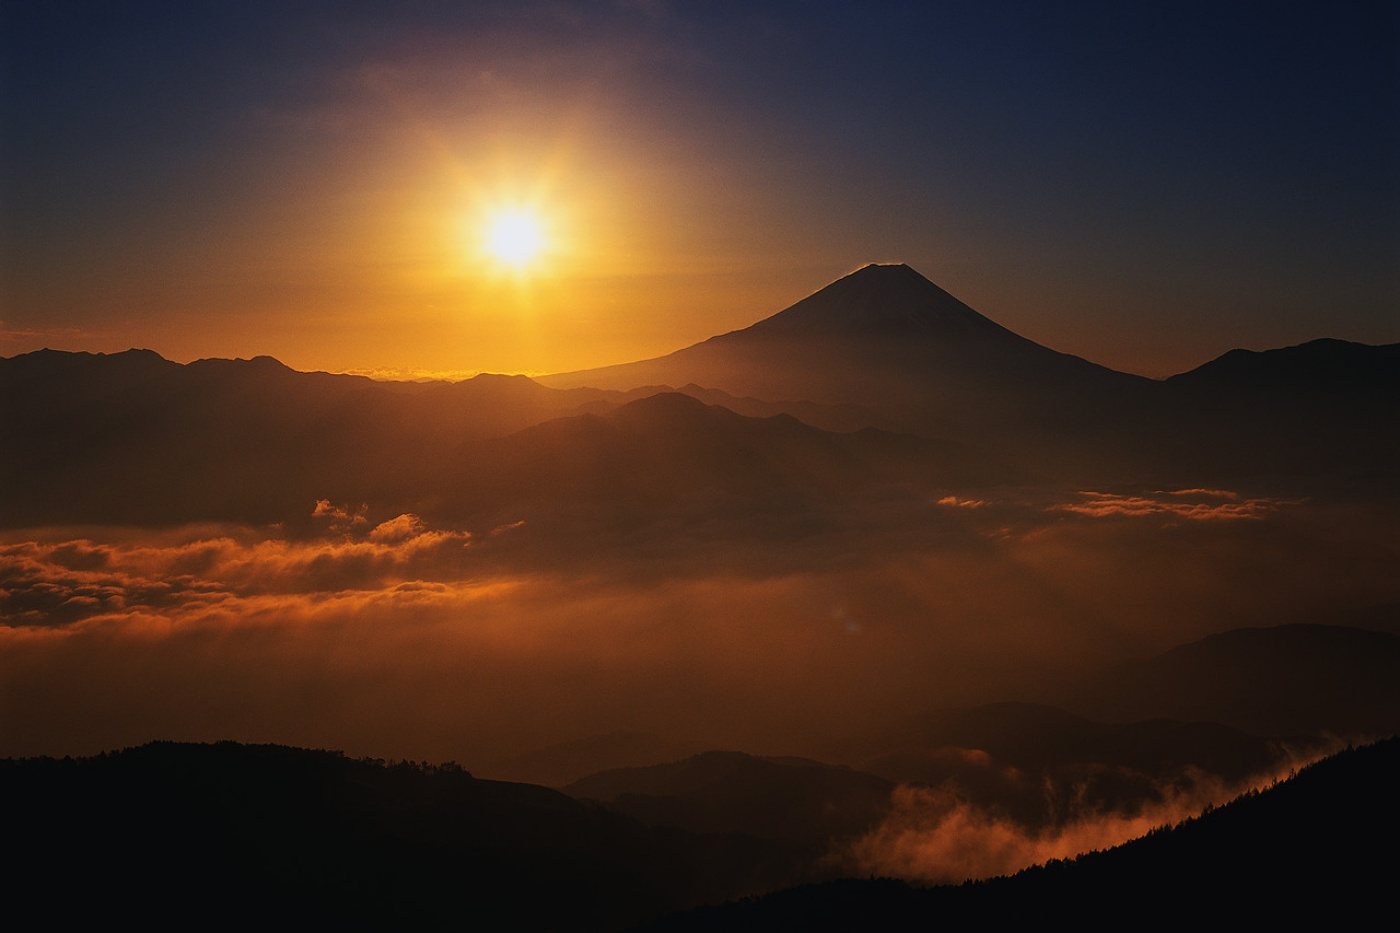 Mountain Sunrise for Pinterest